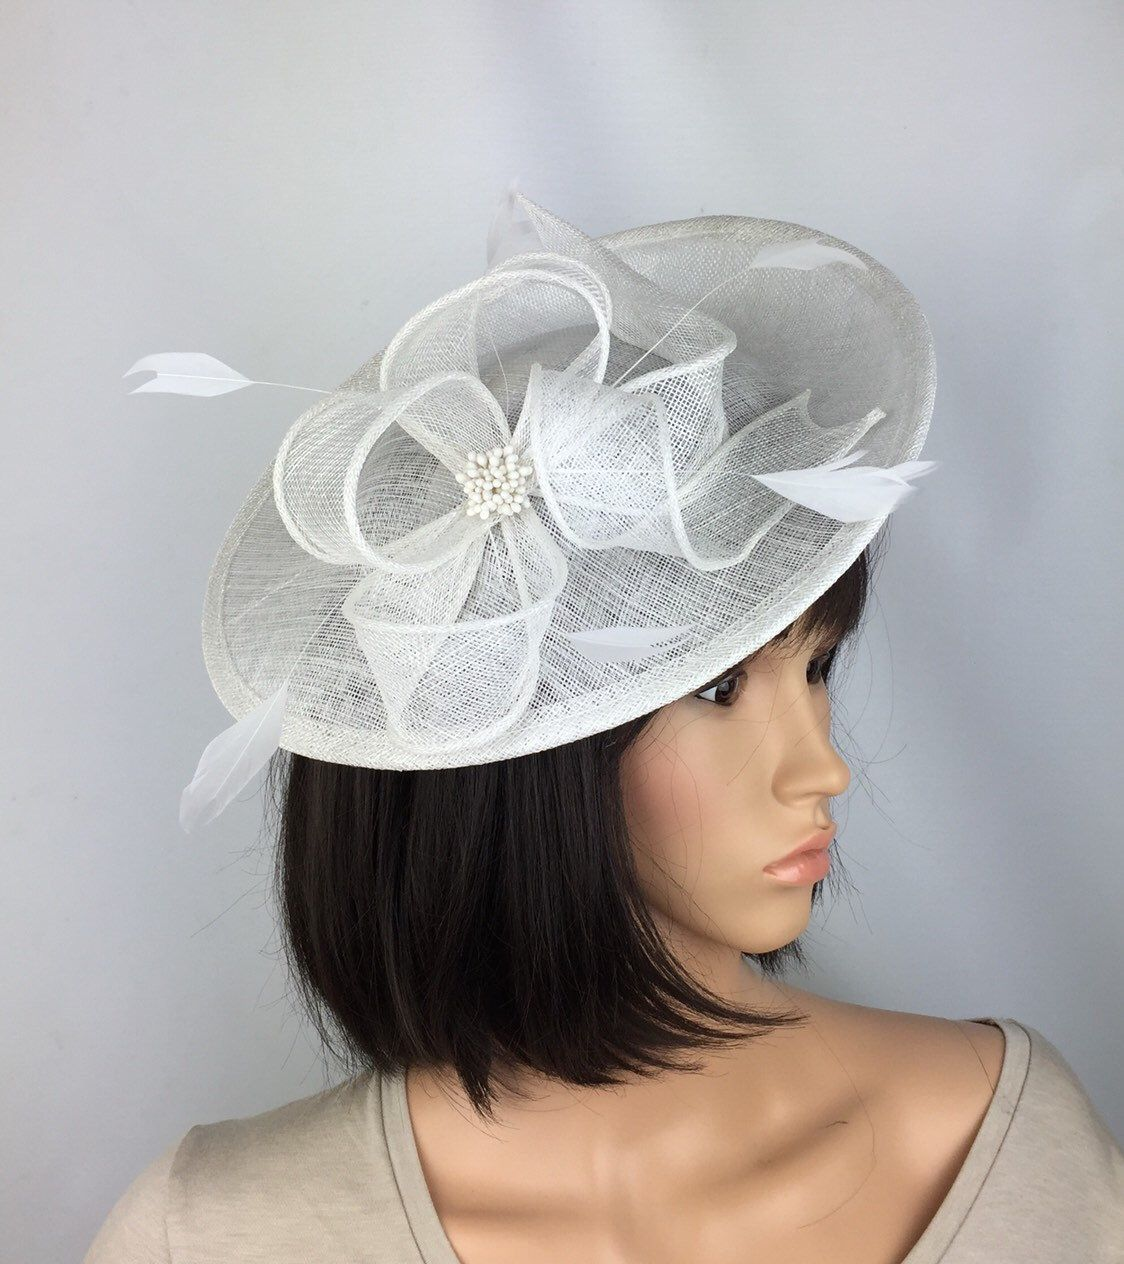 White Fascinator Wedding White Hatinator Ladies Day Races Mother of the Bride Occasion Hair Fascinator #fascinatorstyles A Pretty Elegant white hair fascinator / hatinator to compliment your stylish outfit. Perfect to wear at a wedding whilst being a beautiful mother of the bride or guest, make a statement at the races or for a memorable occasion where you want to stand out from the crowd. • This striking saucer / disc style hatinator has been made from quality sinamay. The focal point of the #fascinatorstyles